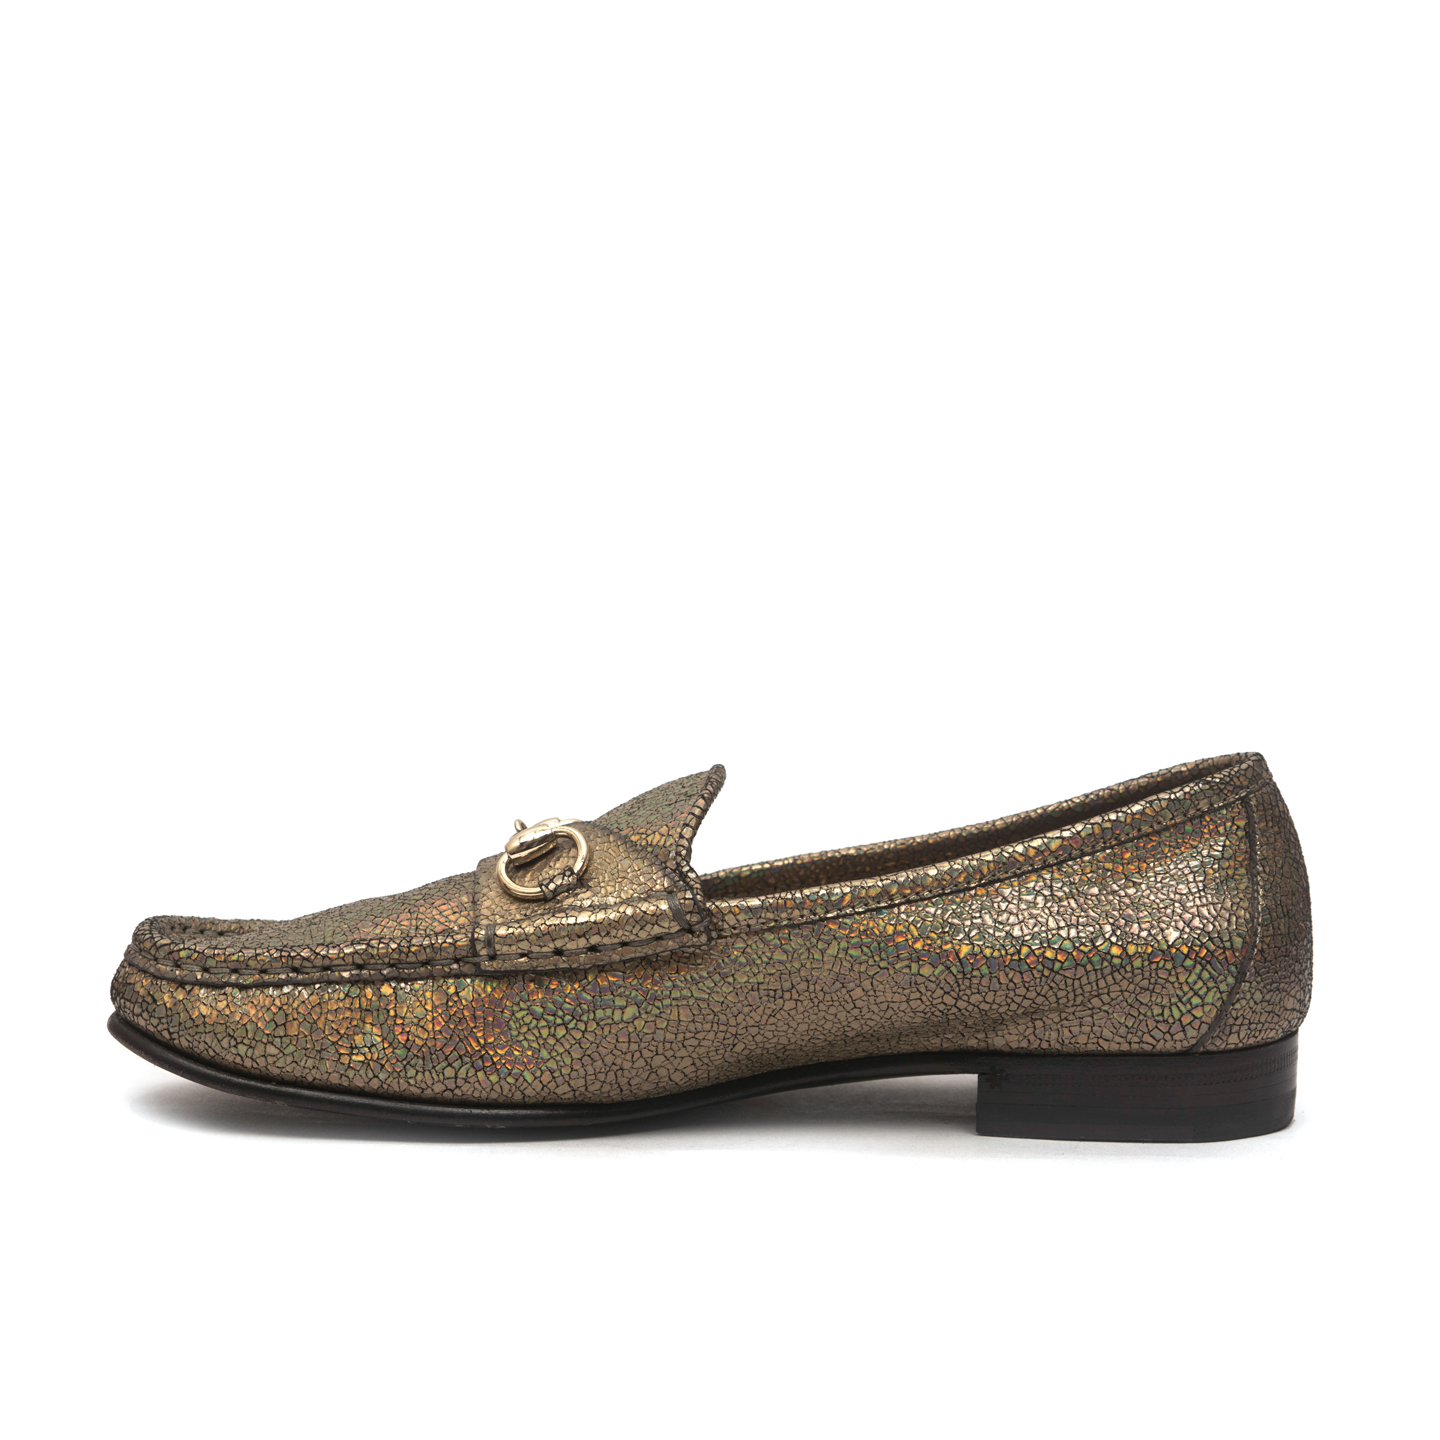 389a0c7db06e ... Gucci 60th Anniversary 1953 Horsebit Metallic Loafer Size 37 3 ...